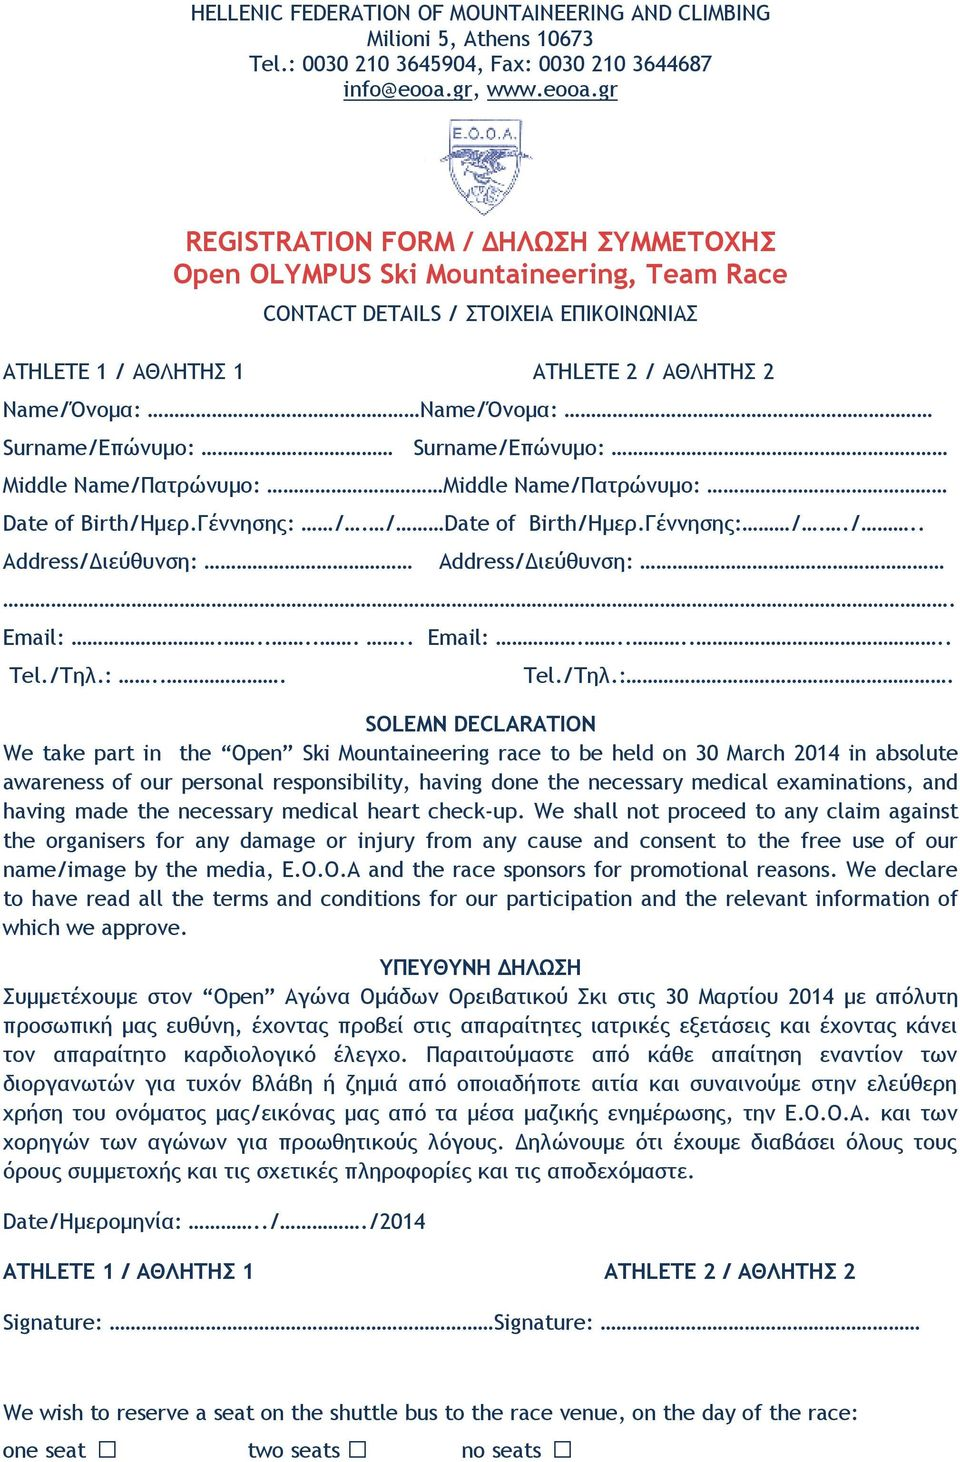 gr REGISTRATION FORM / ΔΗΛΩΣΗ ΣΥΜΜΕΤΟΧΗΣ Open OLYMPUS Ski Mountaineering, Team Race CONTACT DETAILS / ΣΤΟΙΧΕΙΑ ΕΠΙΚΟΙΝΩΝΙΑΣ ATHLETE 1 / ΑΘΛΗΤΗΣ 1 ATHLETE 2 / ΑΘΛΗΤΗΣ 2 Name/Όνομα: Name/Όνομα: